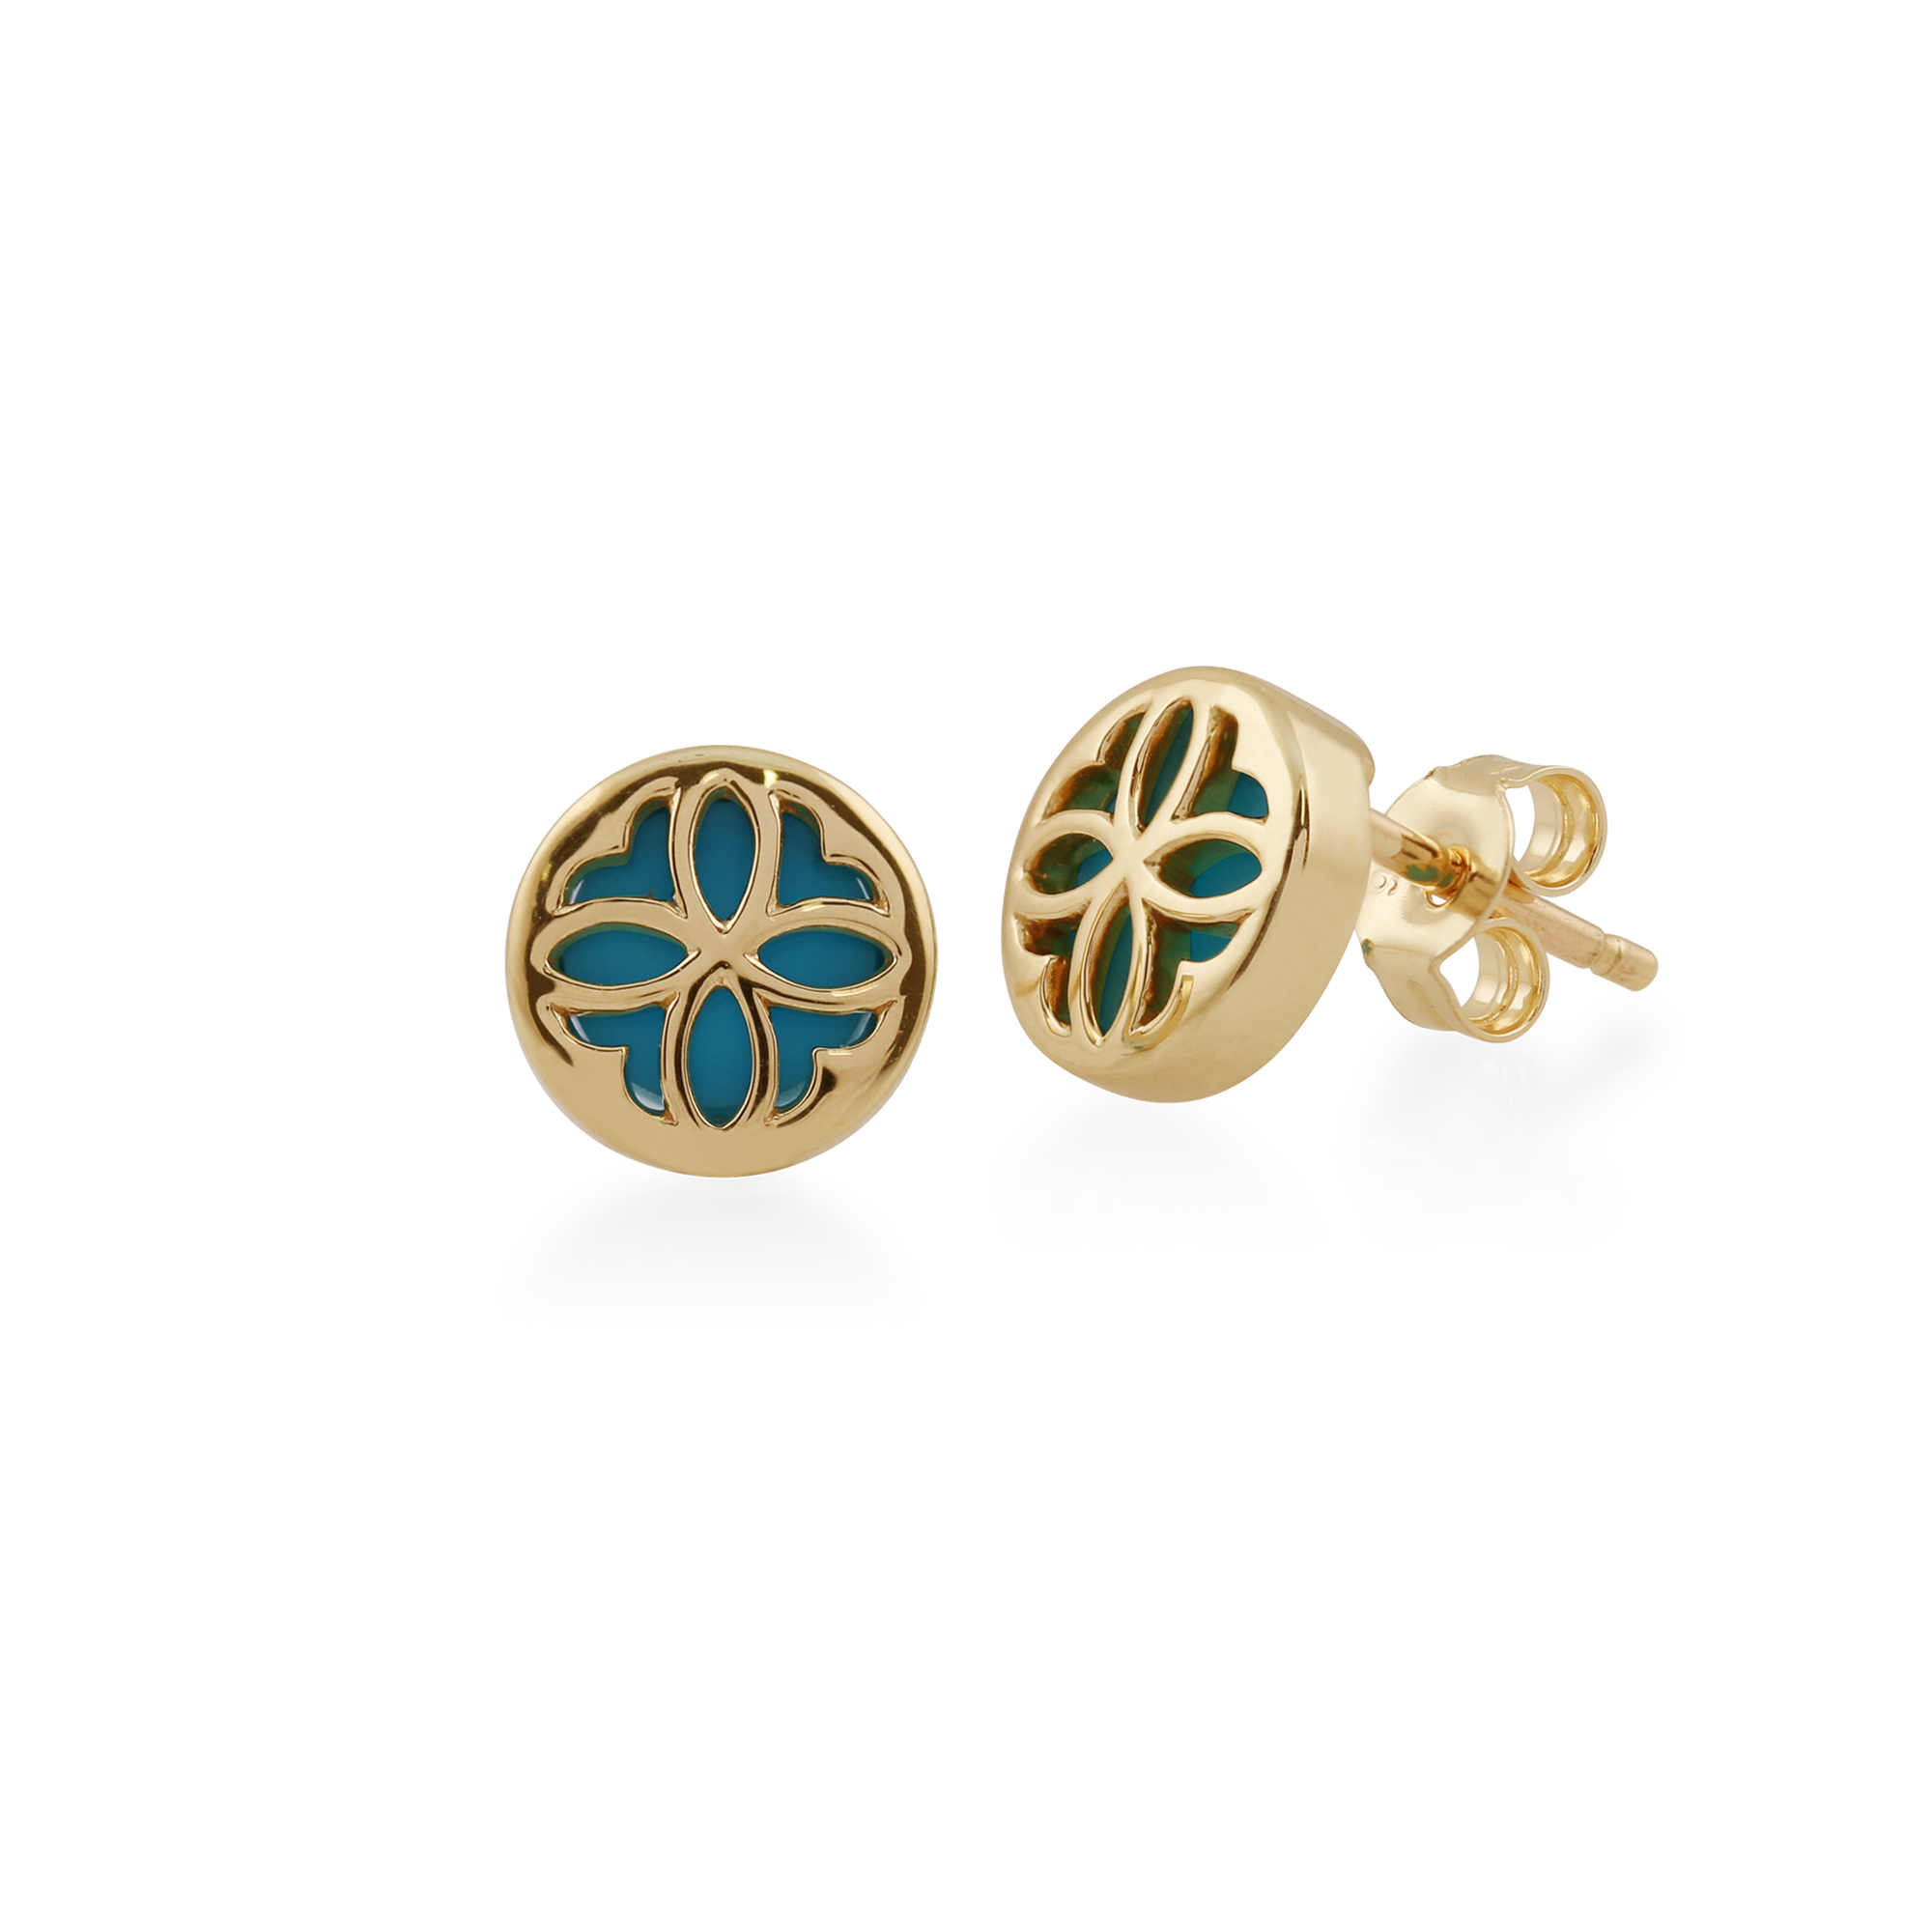 7eb59ad66 Details about Gemondo 9ct Yellow Gold 0.64ct Turquoise Stud Earrings